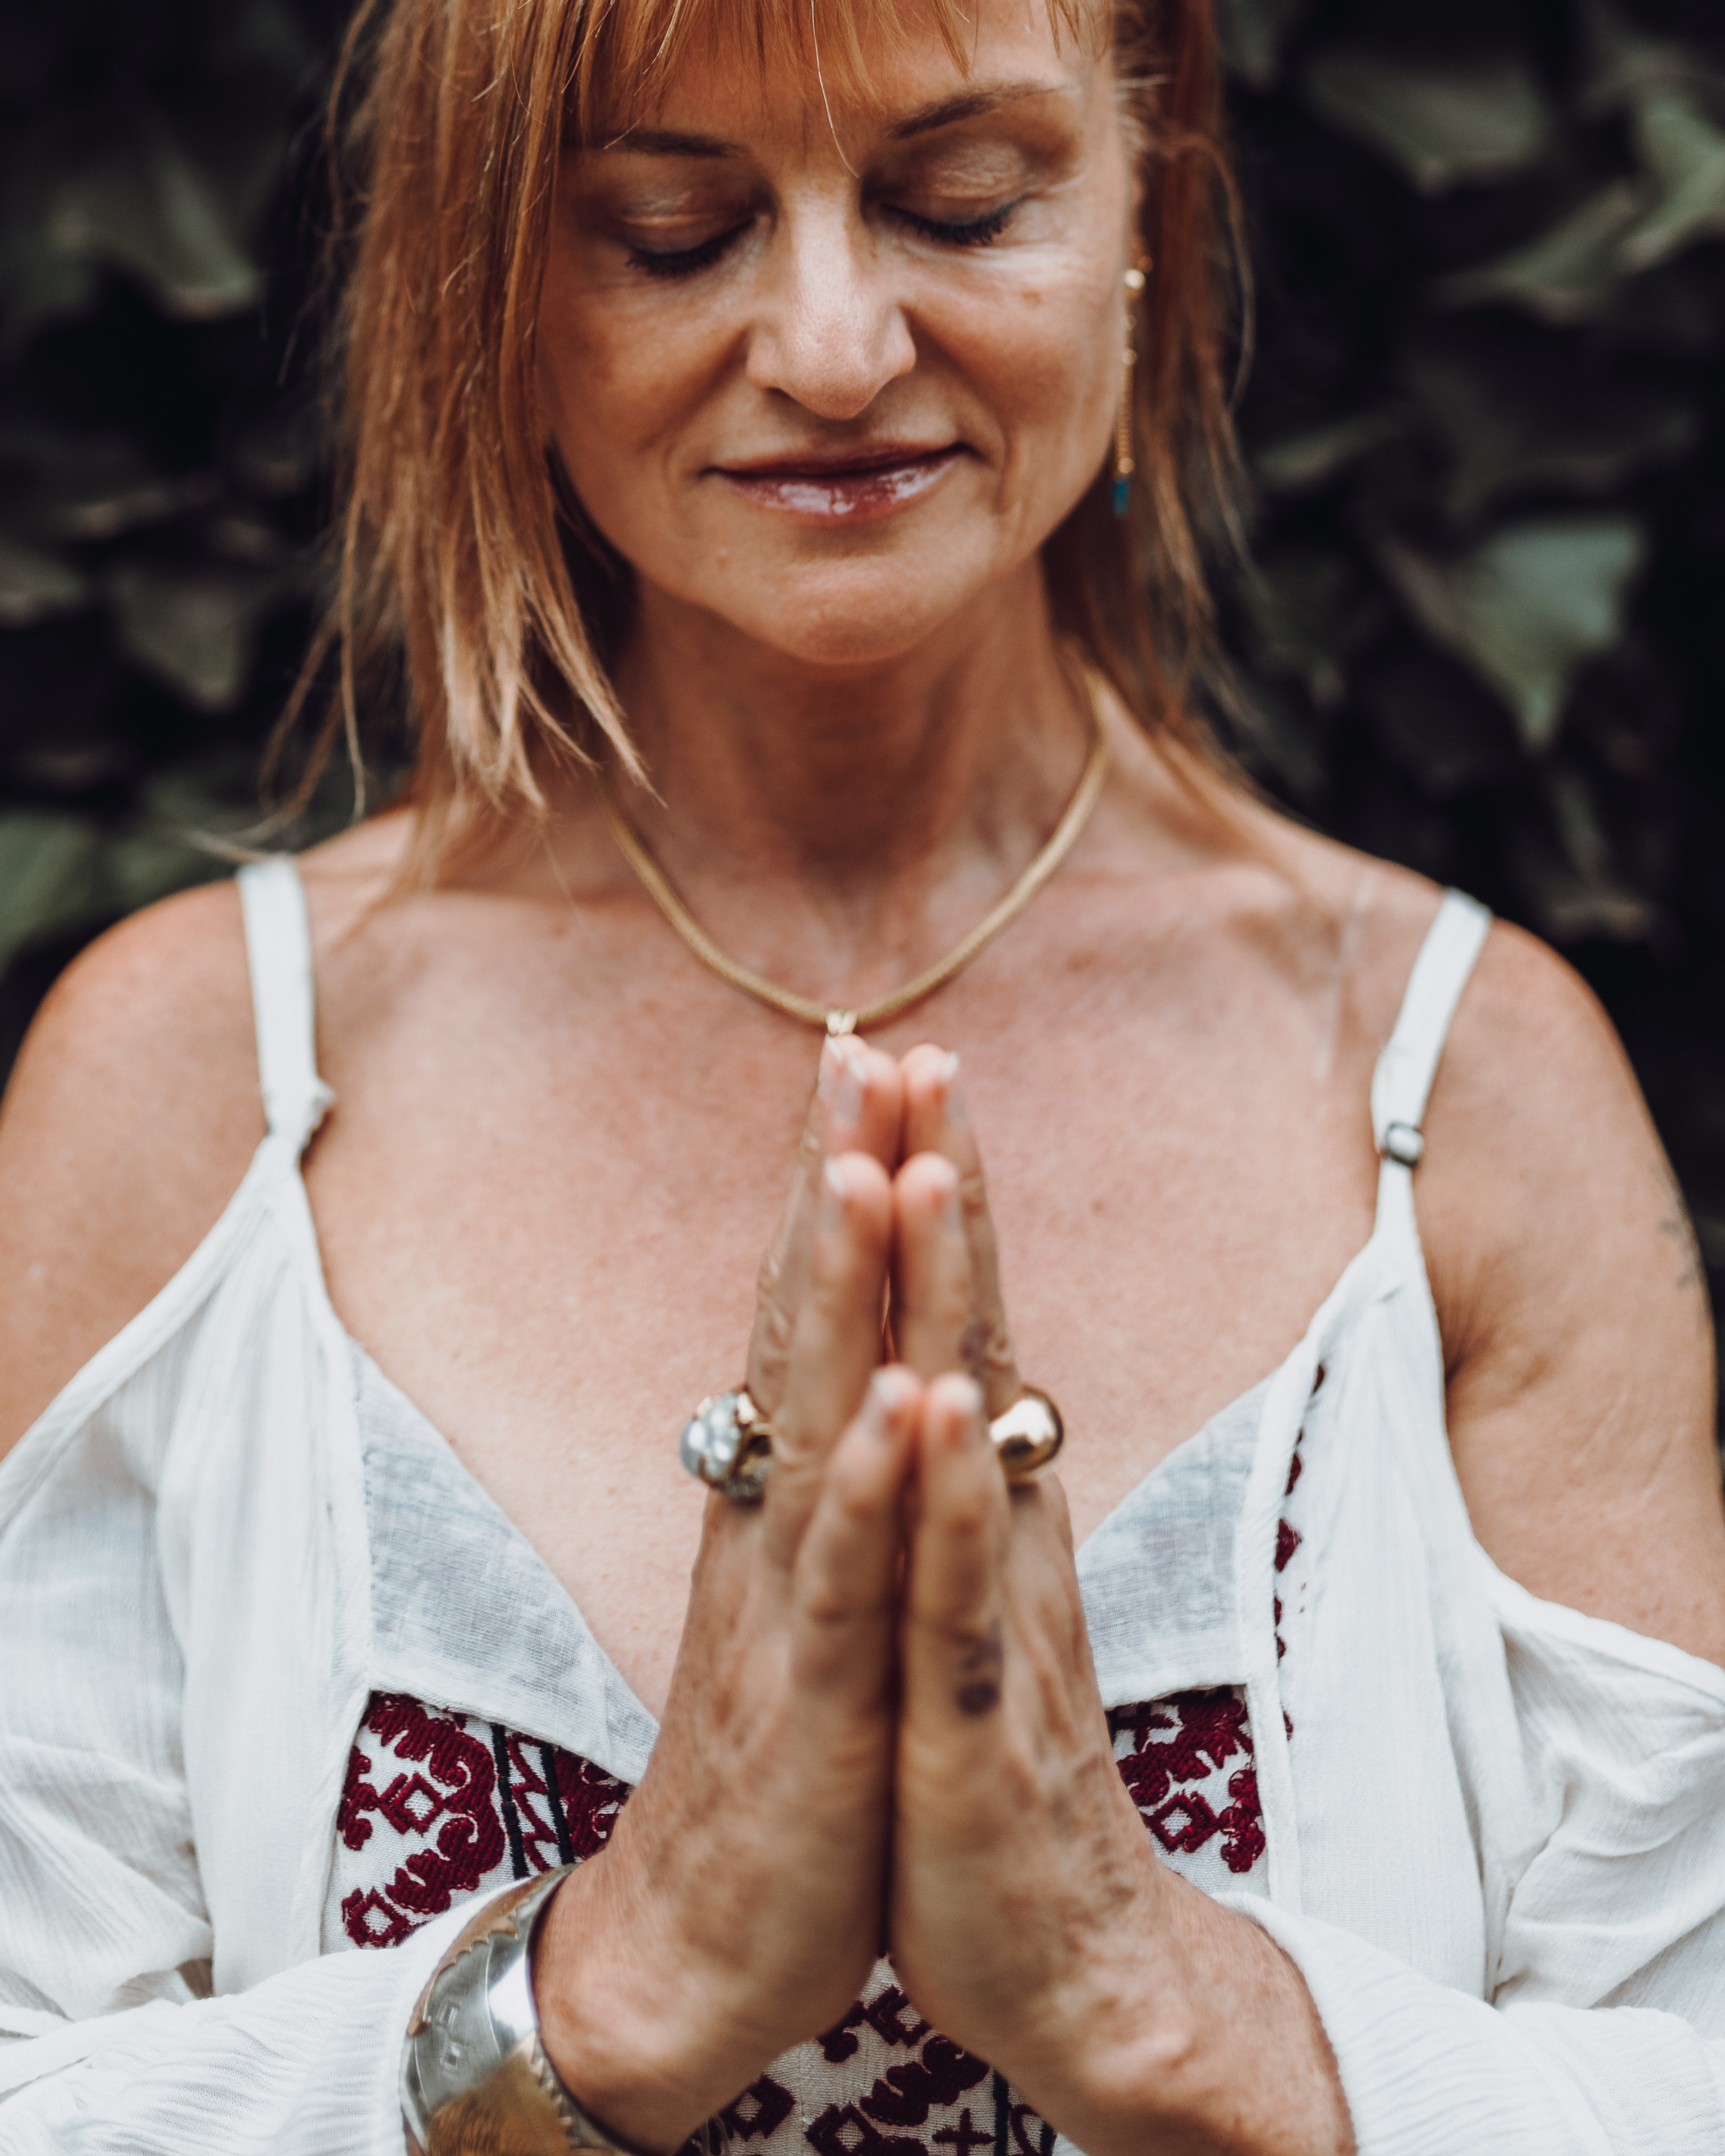 Ready to work together? Let's talk. - If you're interested in working together, attending a retreat or simply have a question. You can either use the contact form below, or just drop me an email. I will do my best to respond to all messages within 48 hours.Email: Sally@millionaireyogi.guru